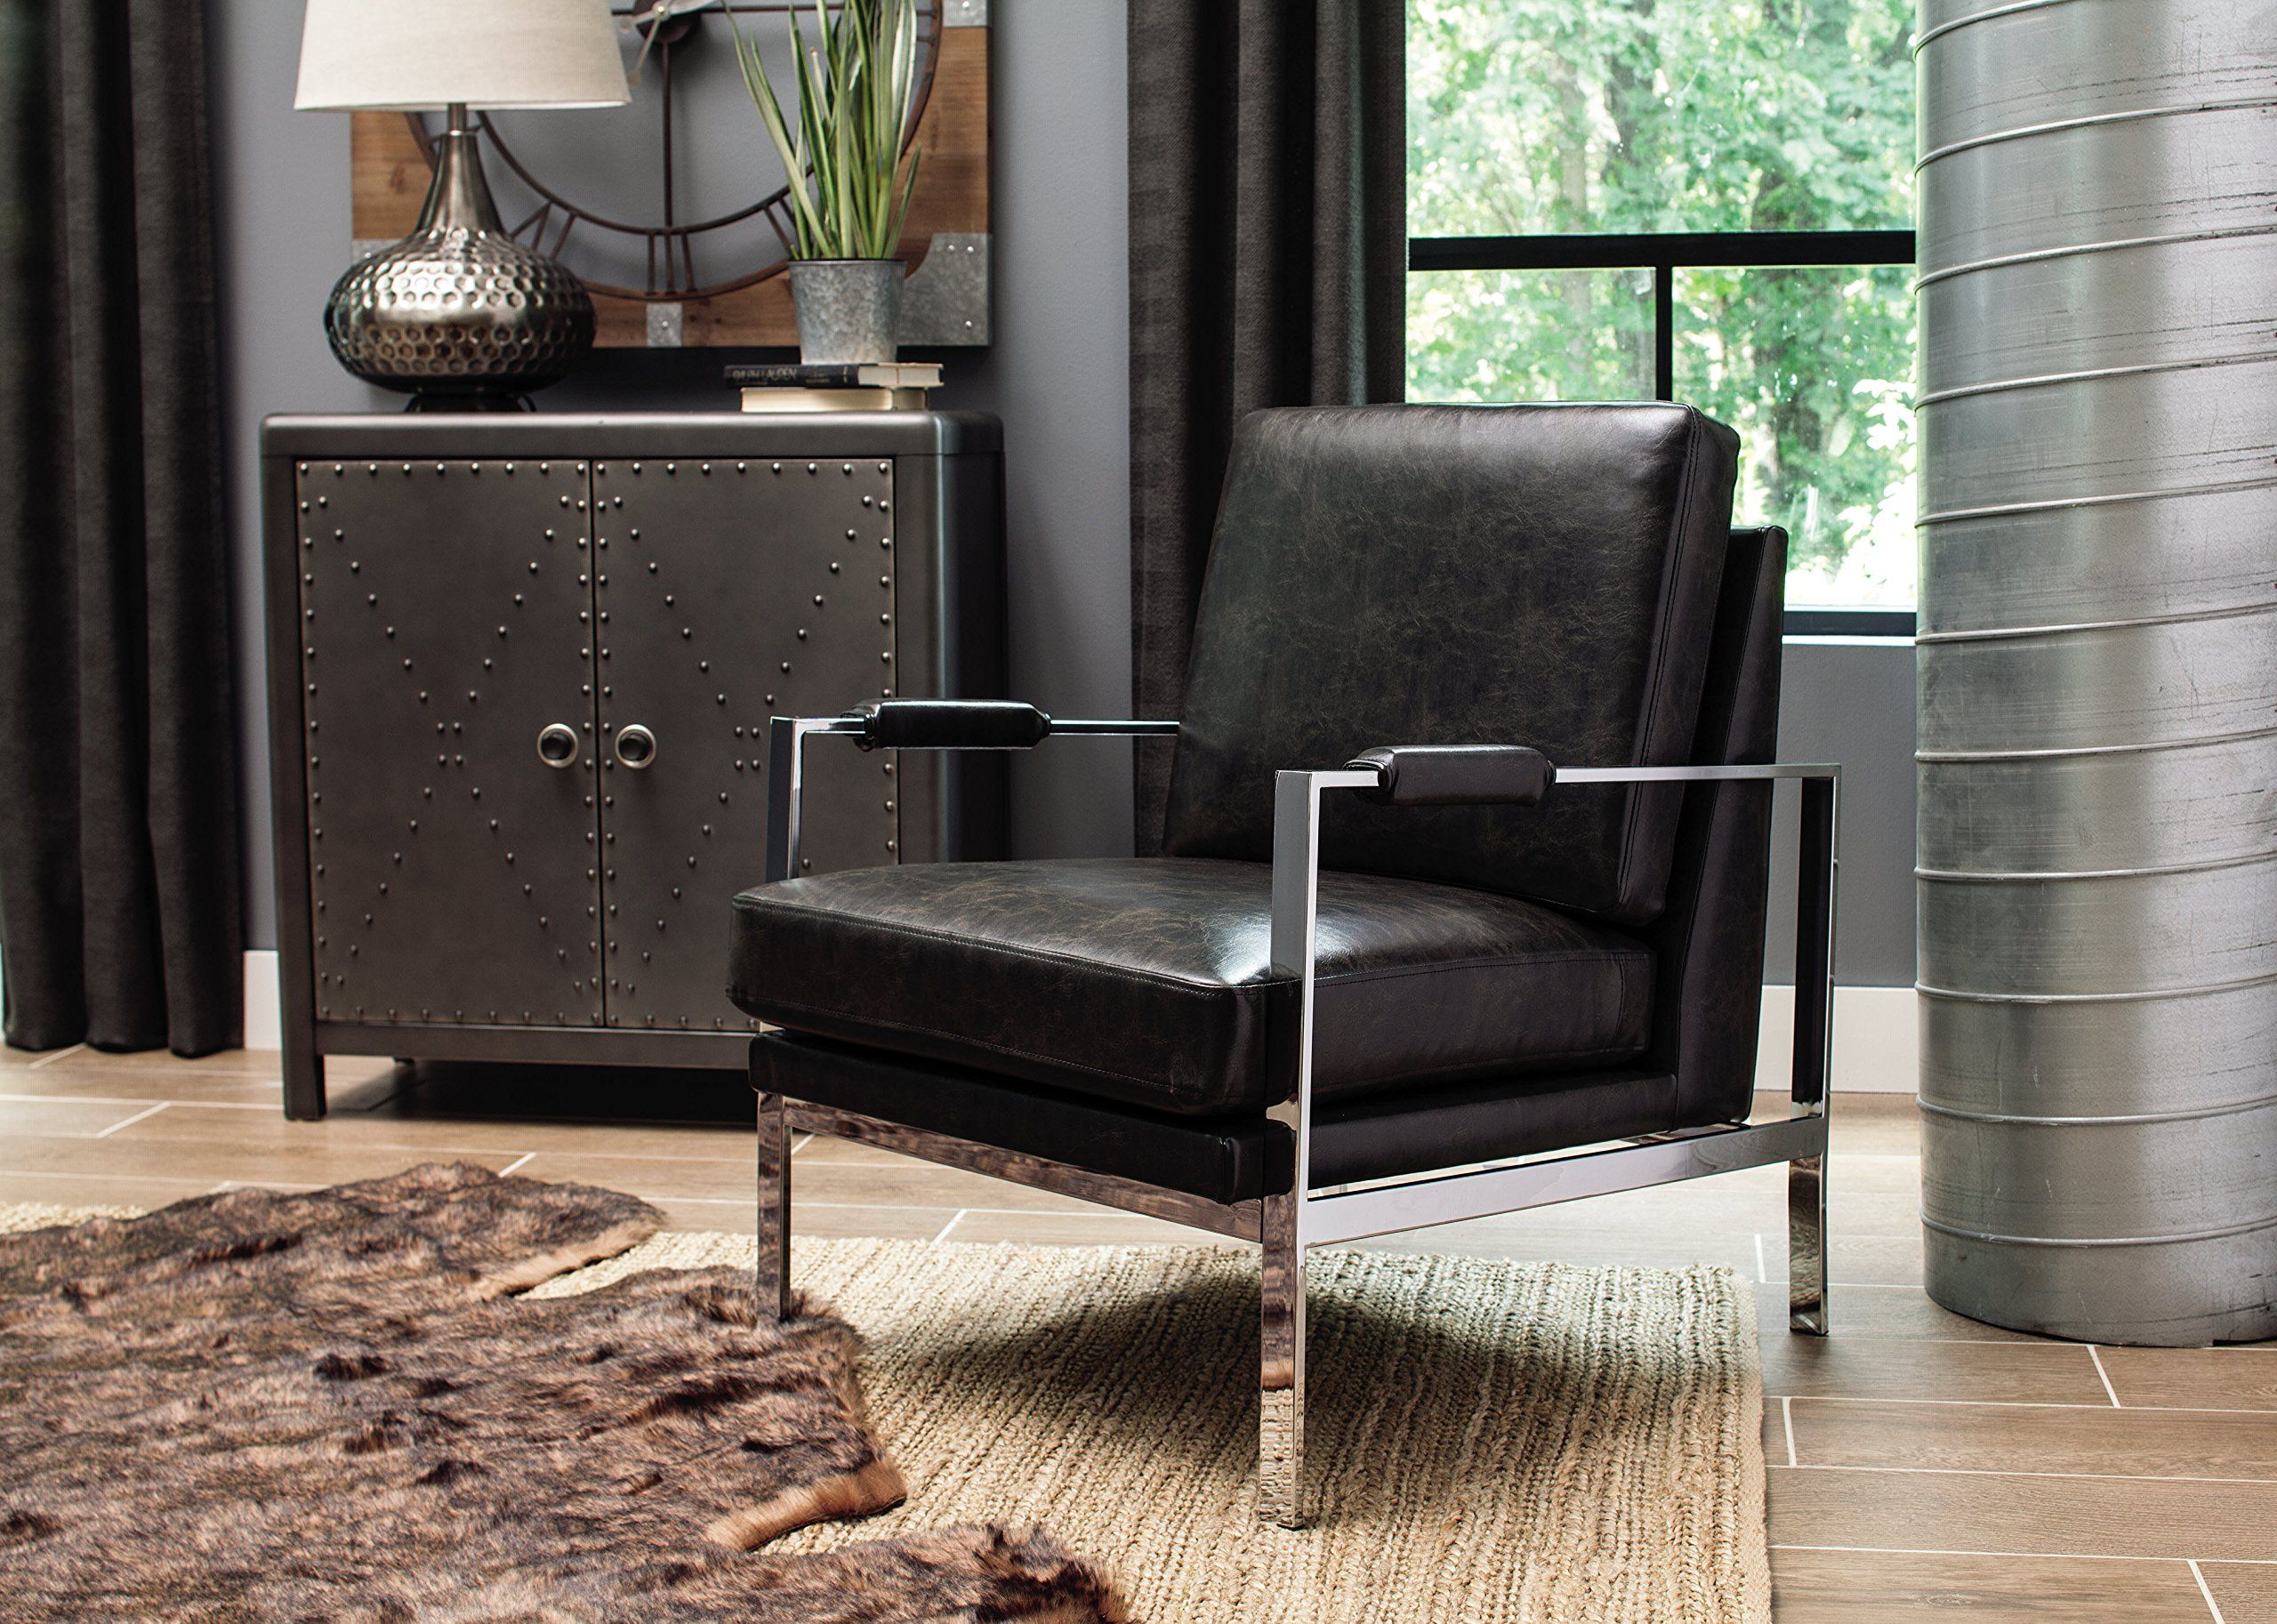 Ashley Furniture Signature Design Network Accent Chair Mid Century Modern Black Silver Legs See This Gre With Images Black Accent Chair Chic Accent Chairs Furniture